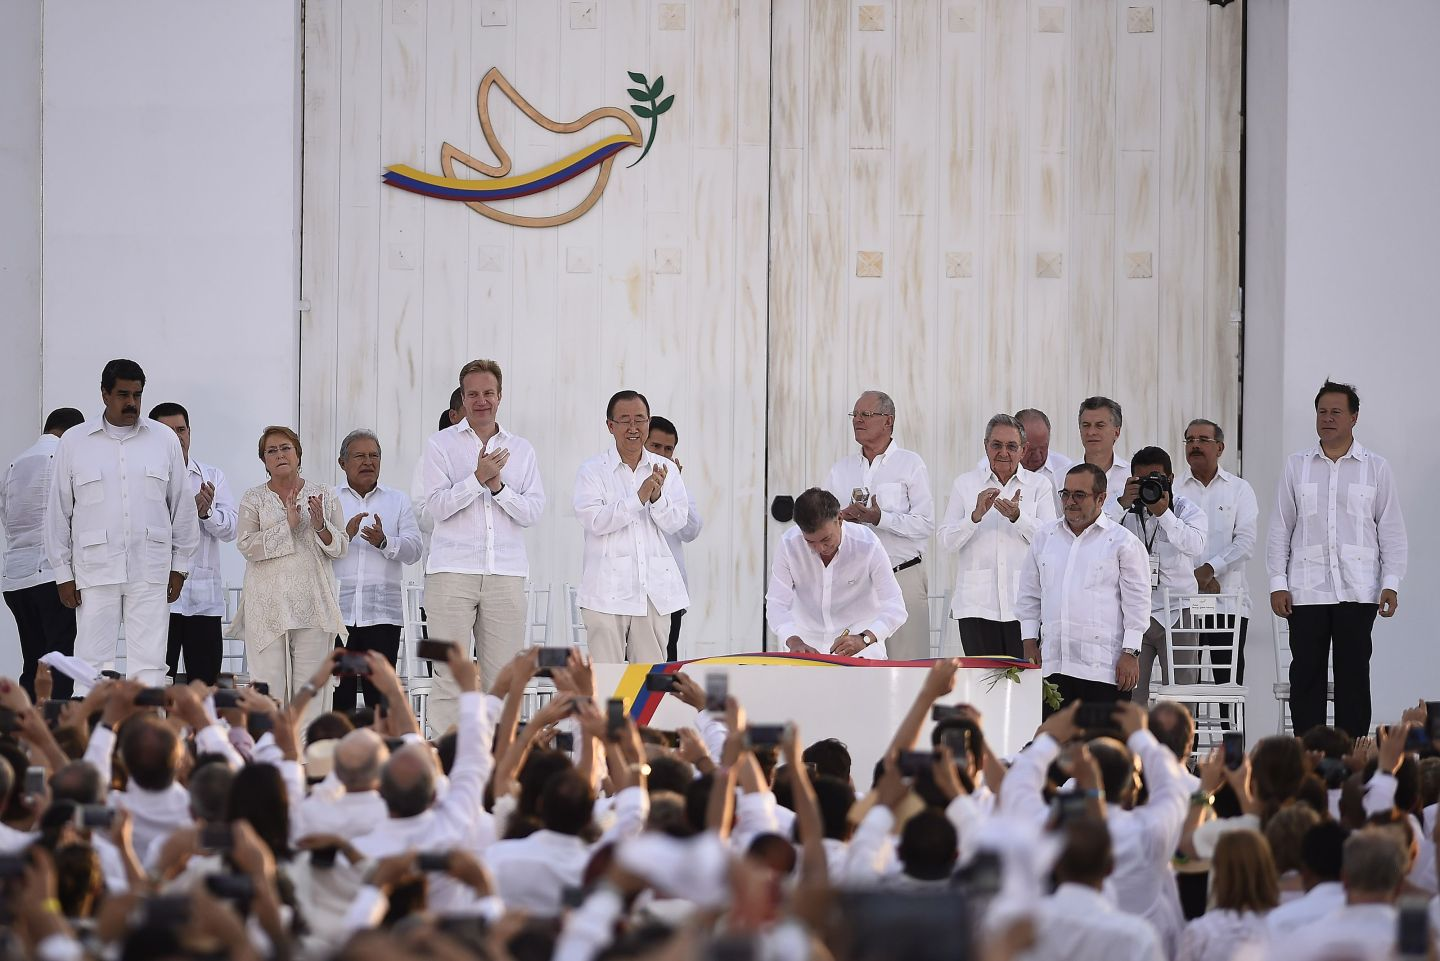 Pursuing peace: Colombia's new deal